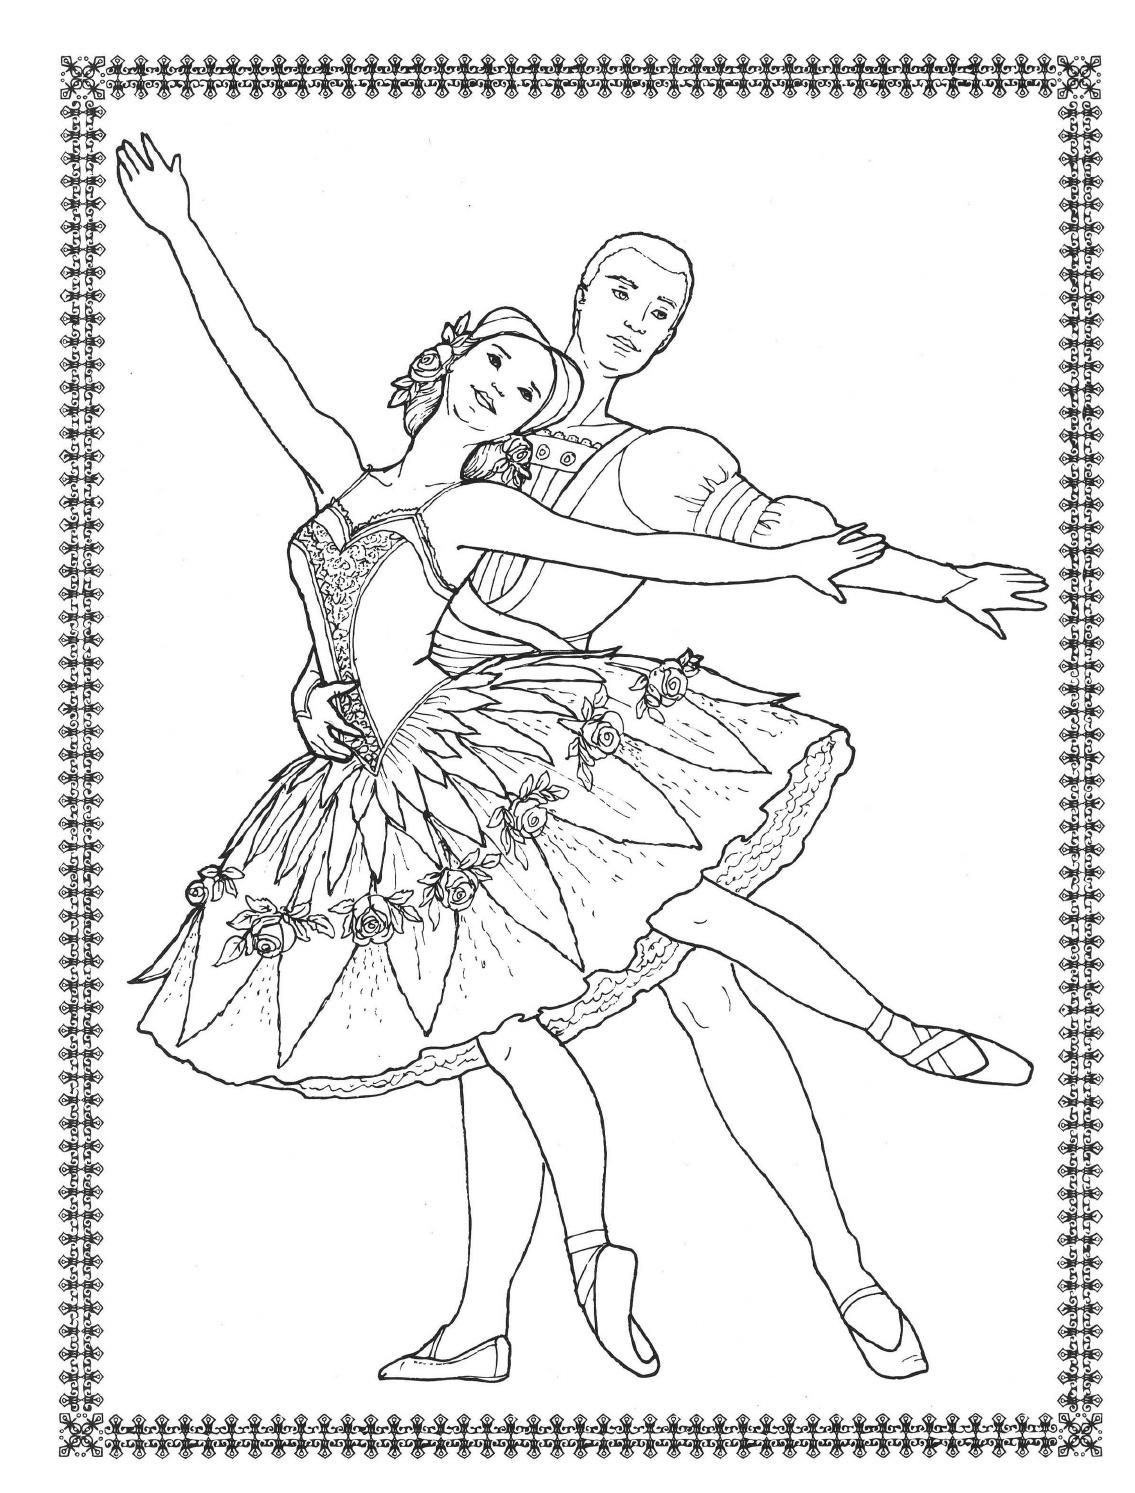 Dancers coloring book costumes for coloring | Pinterest | Refugios ...